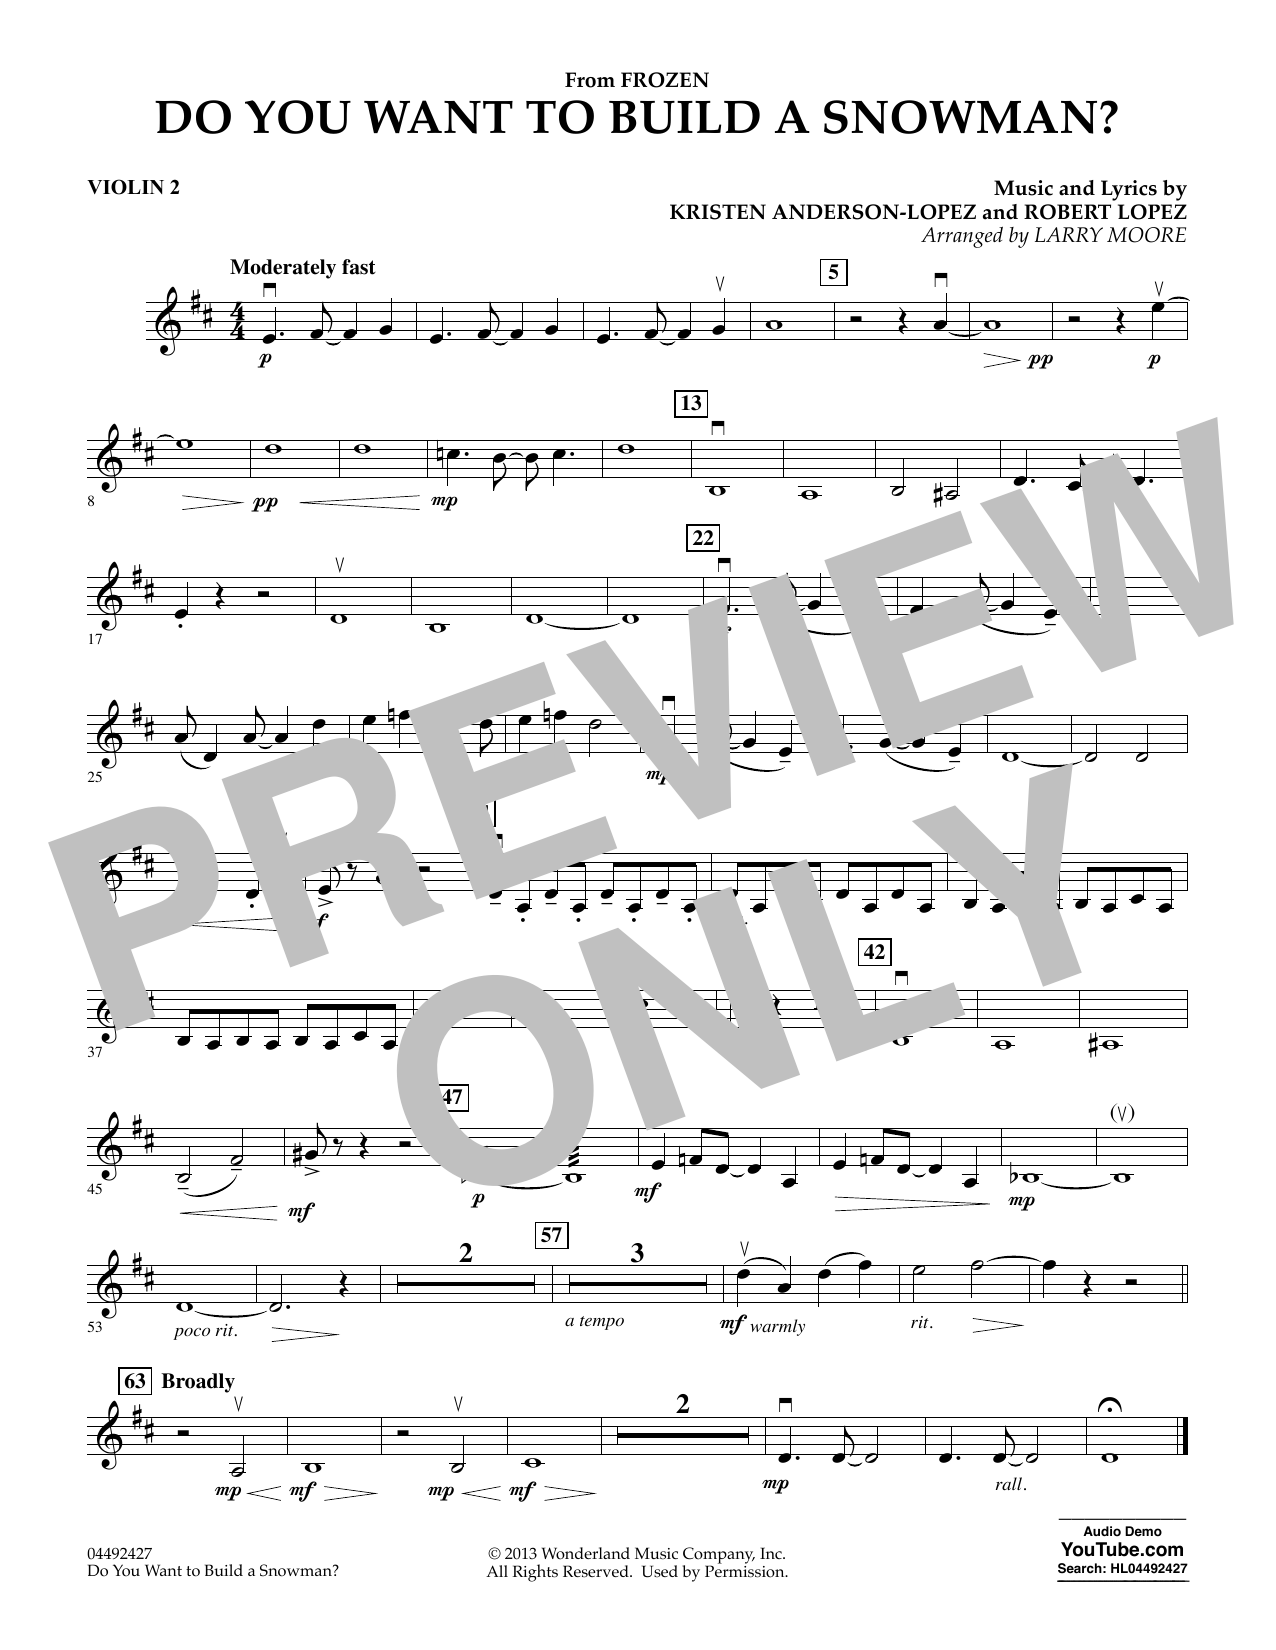 Kristen Bell, Agatha Lee Monn & Katie Lopez Do You Want To Build A Snowman (from Frozen) (arr. Larry Moore) - Violin 2 sheet music preview music notes and score for Orchestra including 1 page(s)